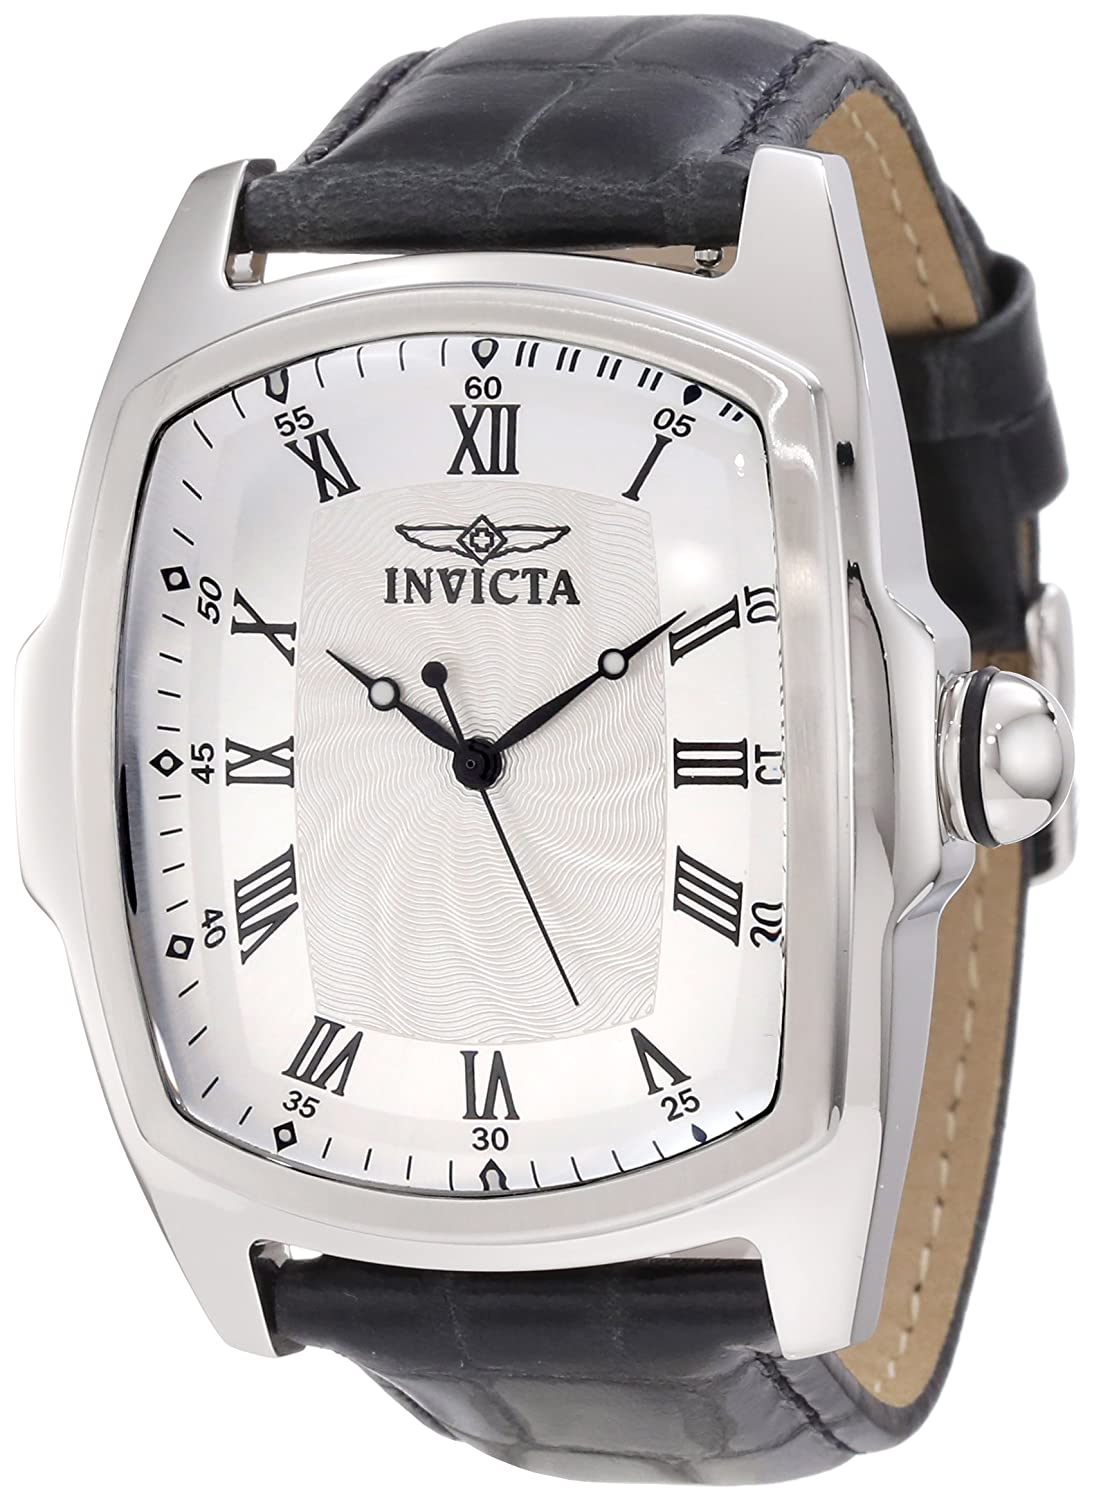 Invicta Men&#8217;s 12849 Lupah Silver Dial Leather Watch Set with Interchangeable Straps$59.99